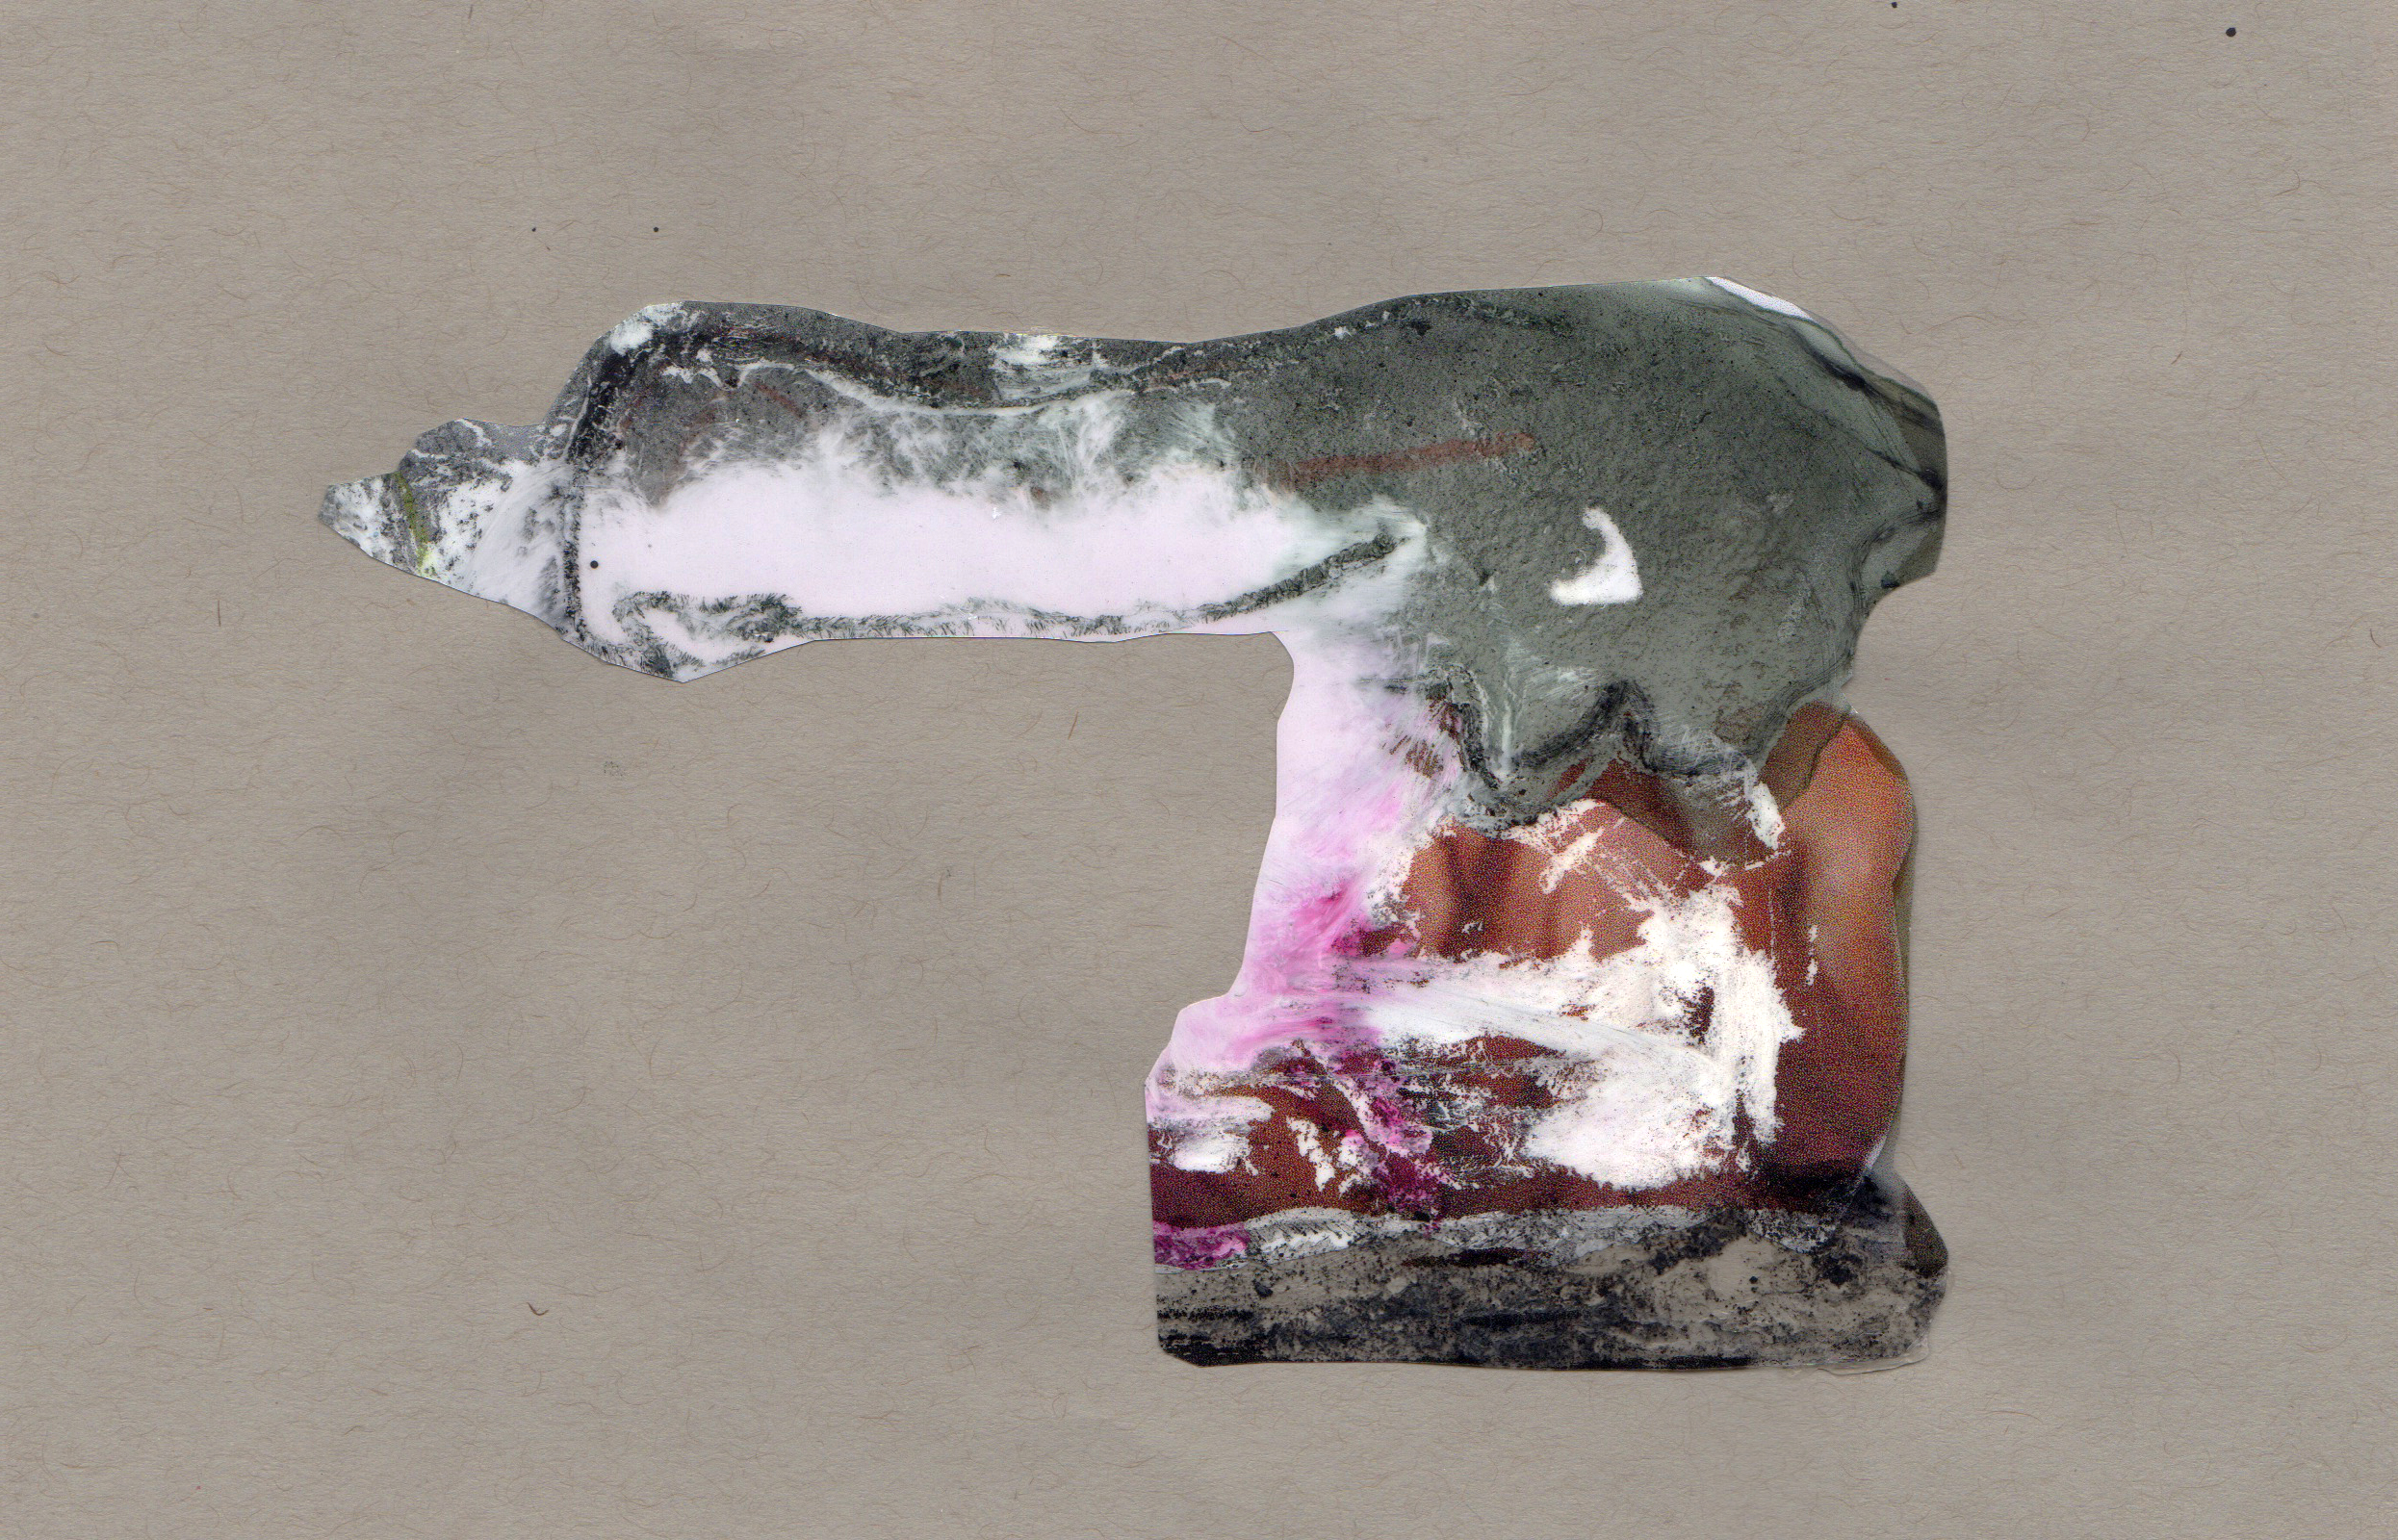 Cloud Cannon, 2014, paint transparency archival ink and paper, 8.5x5.5 inches